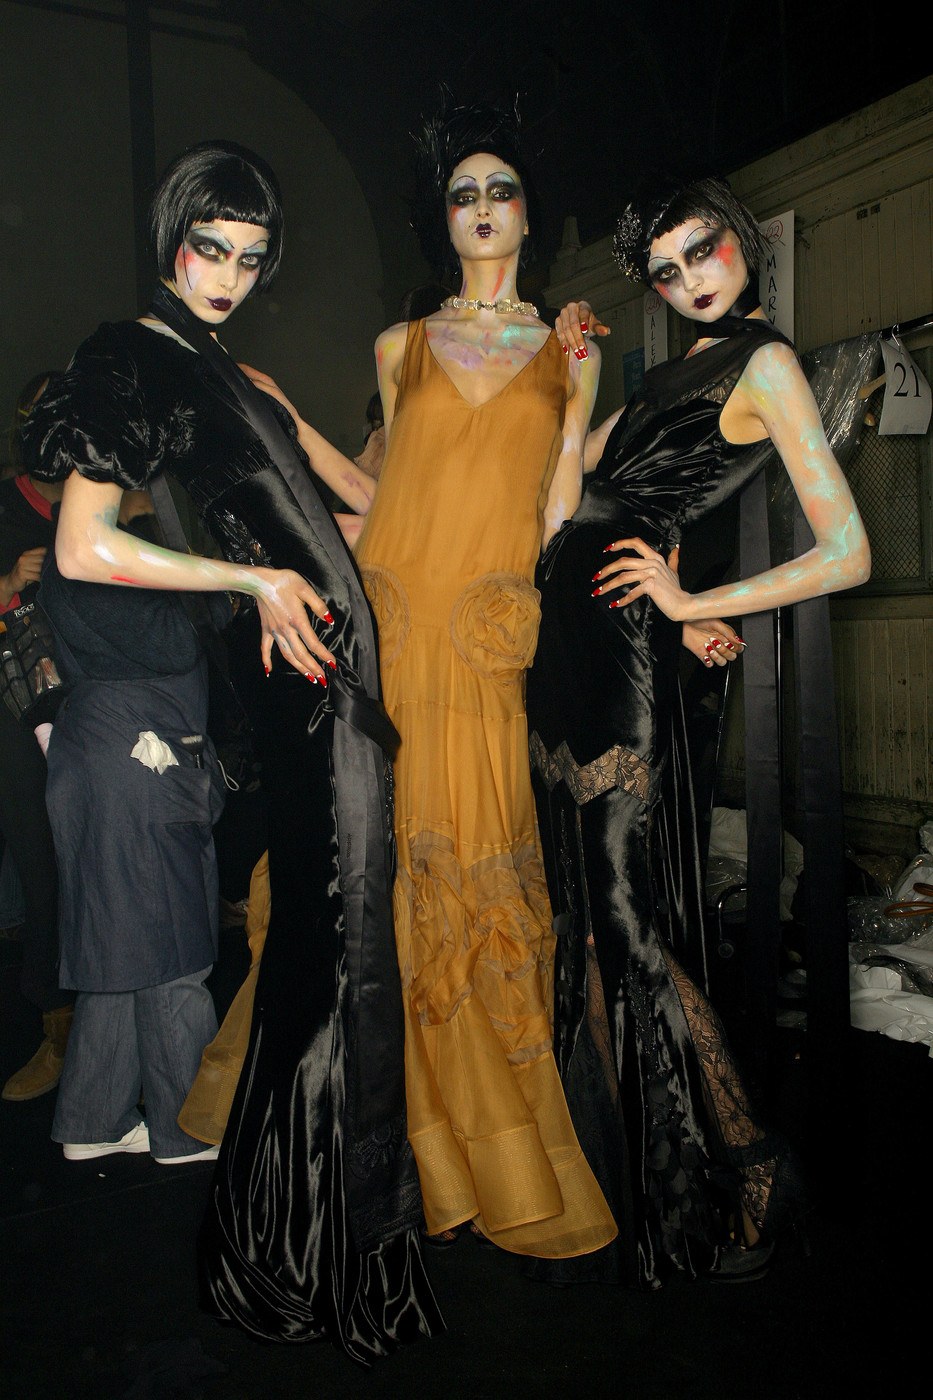 Three tall and slender women in art deco era costume and dark eye makeup